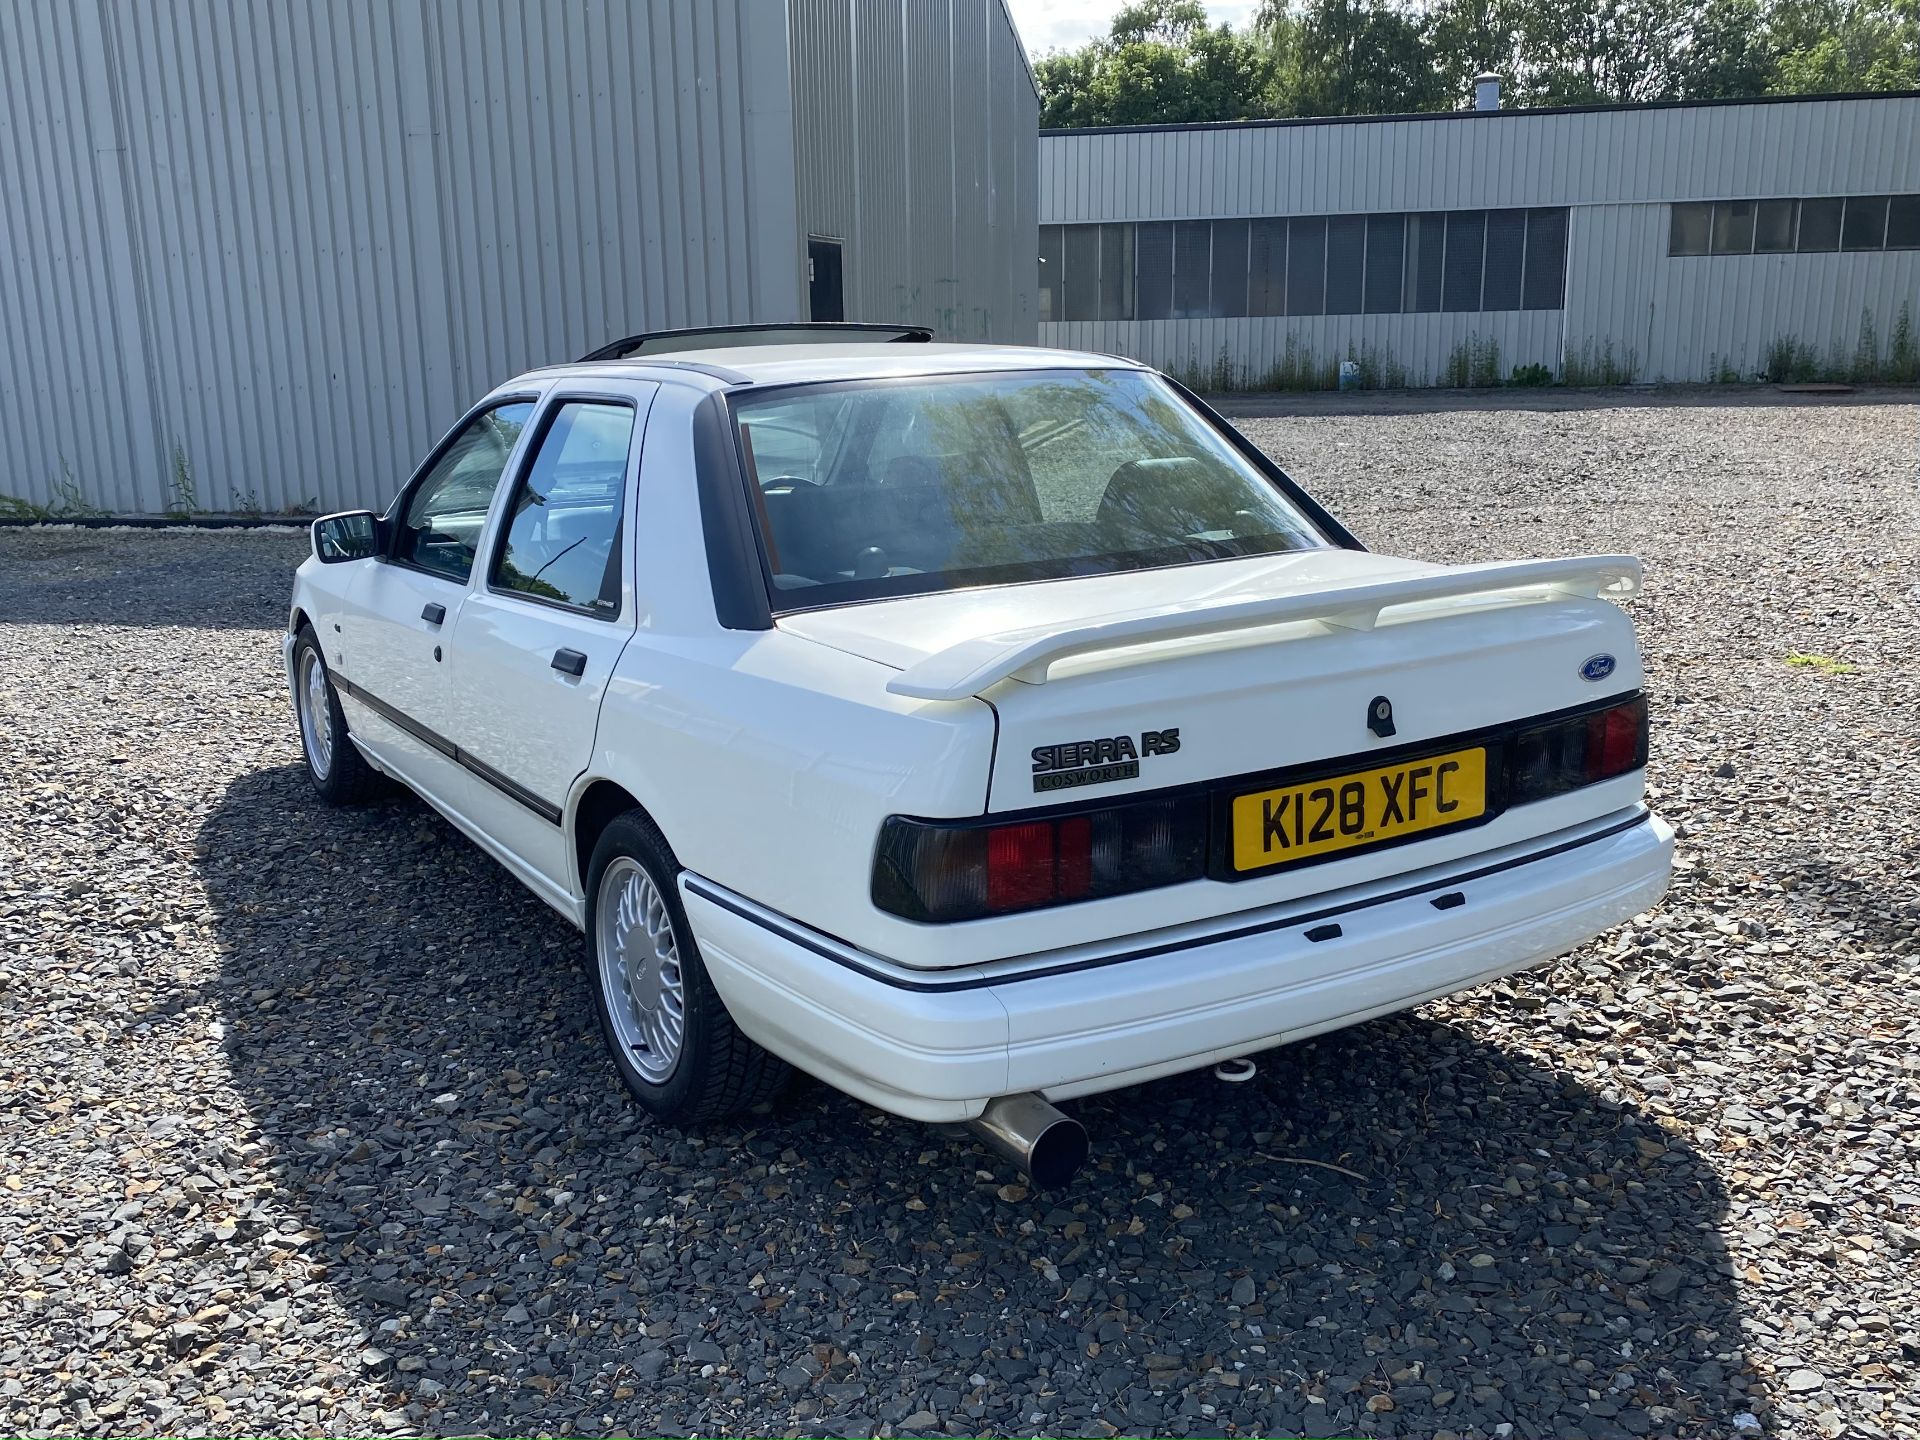 Ford Sierra Sapphire Cosworth 4x4 - Image 10 of 55